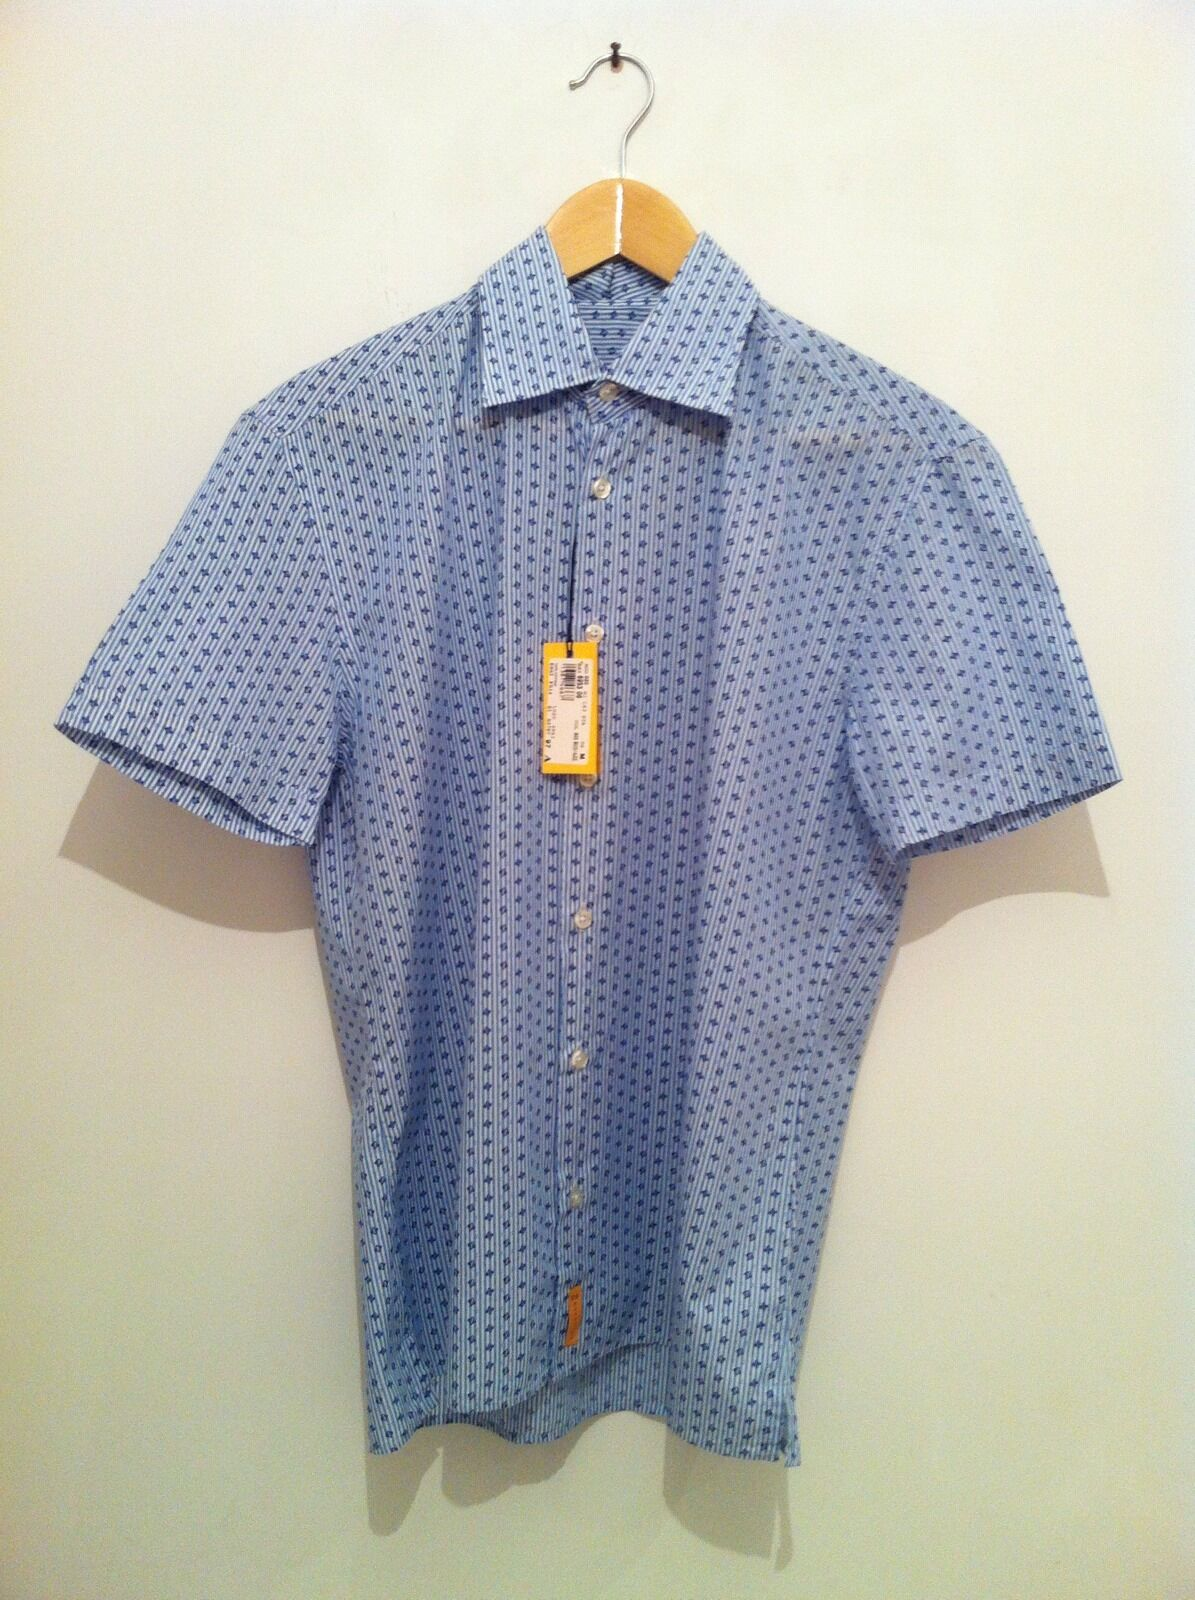 BNWT DS REACTION Short Sleeve Shirt In bluee White Print Size M